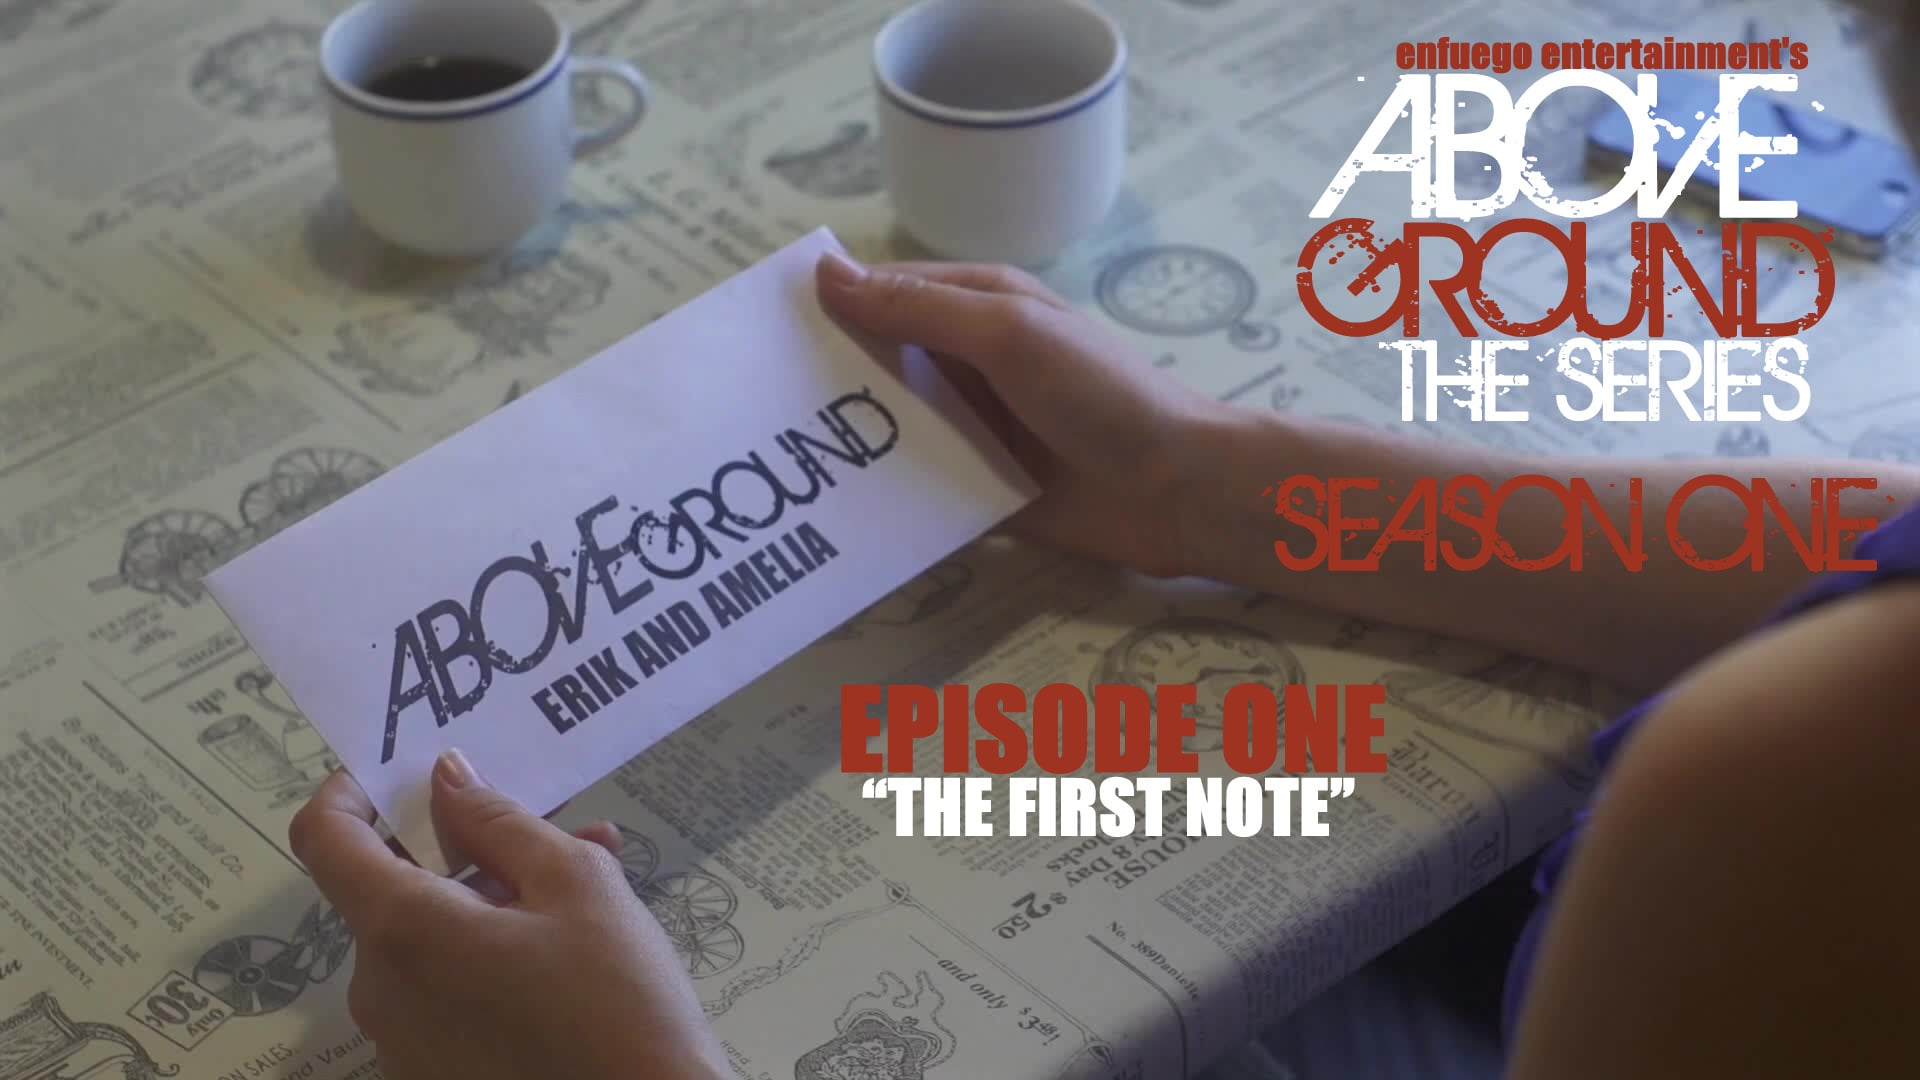 """AboveGround The Series - Episode 1.1 """"The First Note"""" - Season One"""